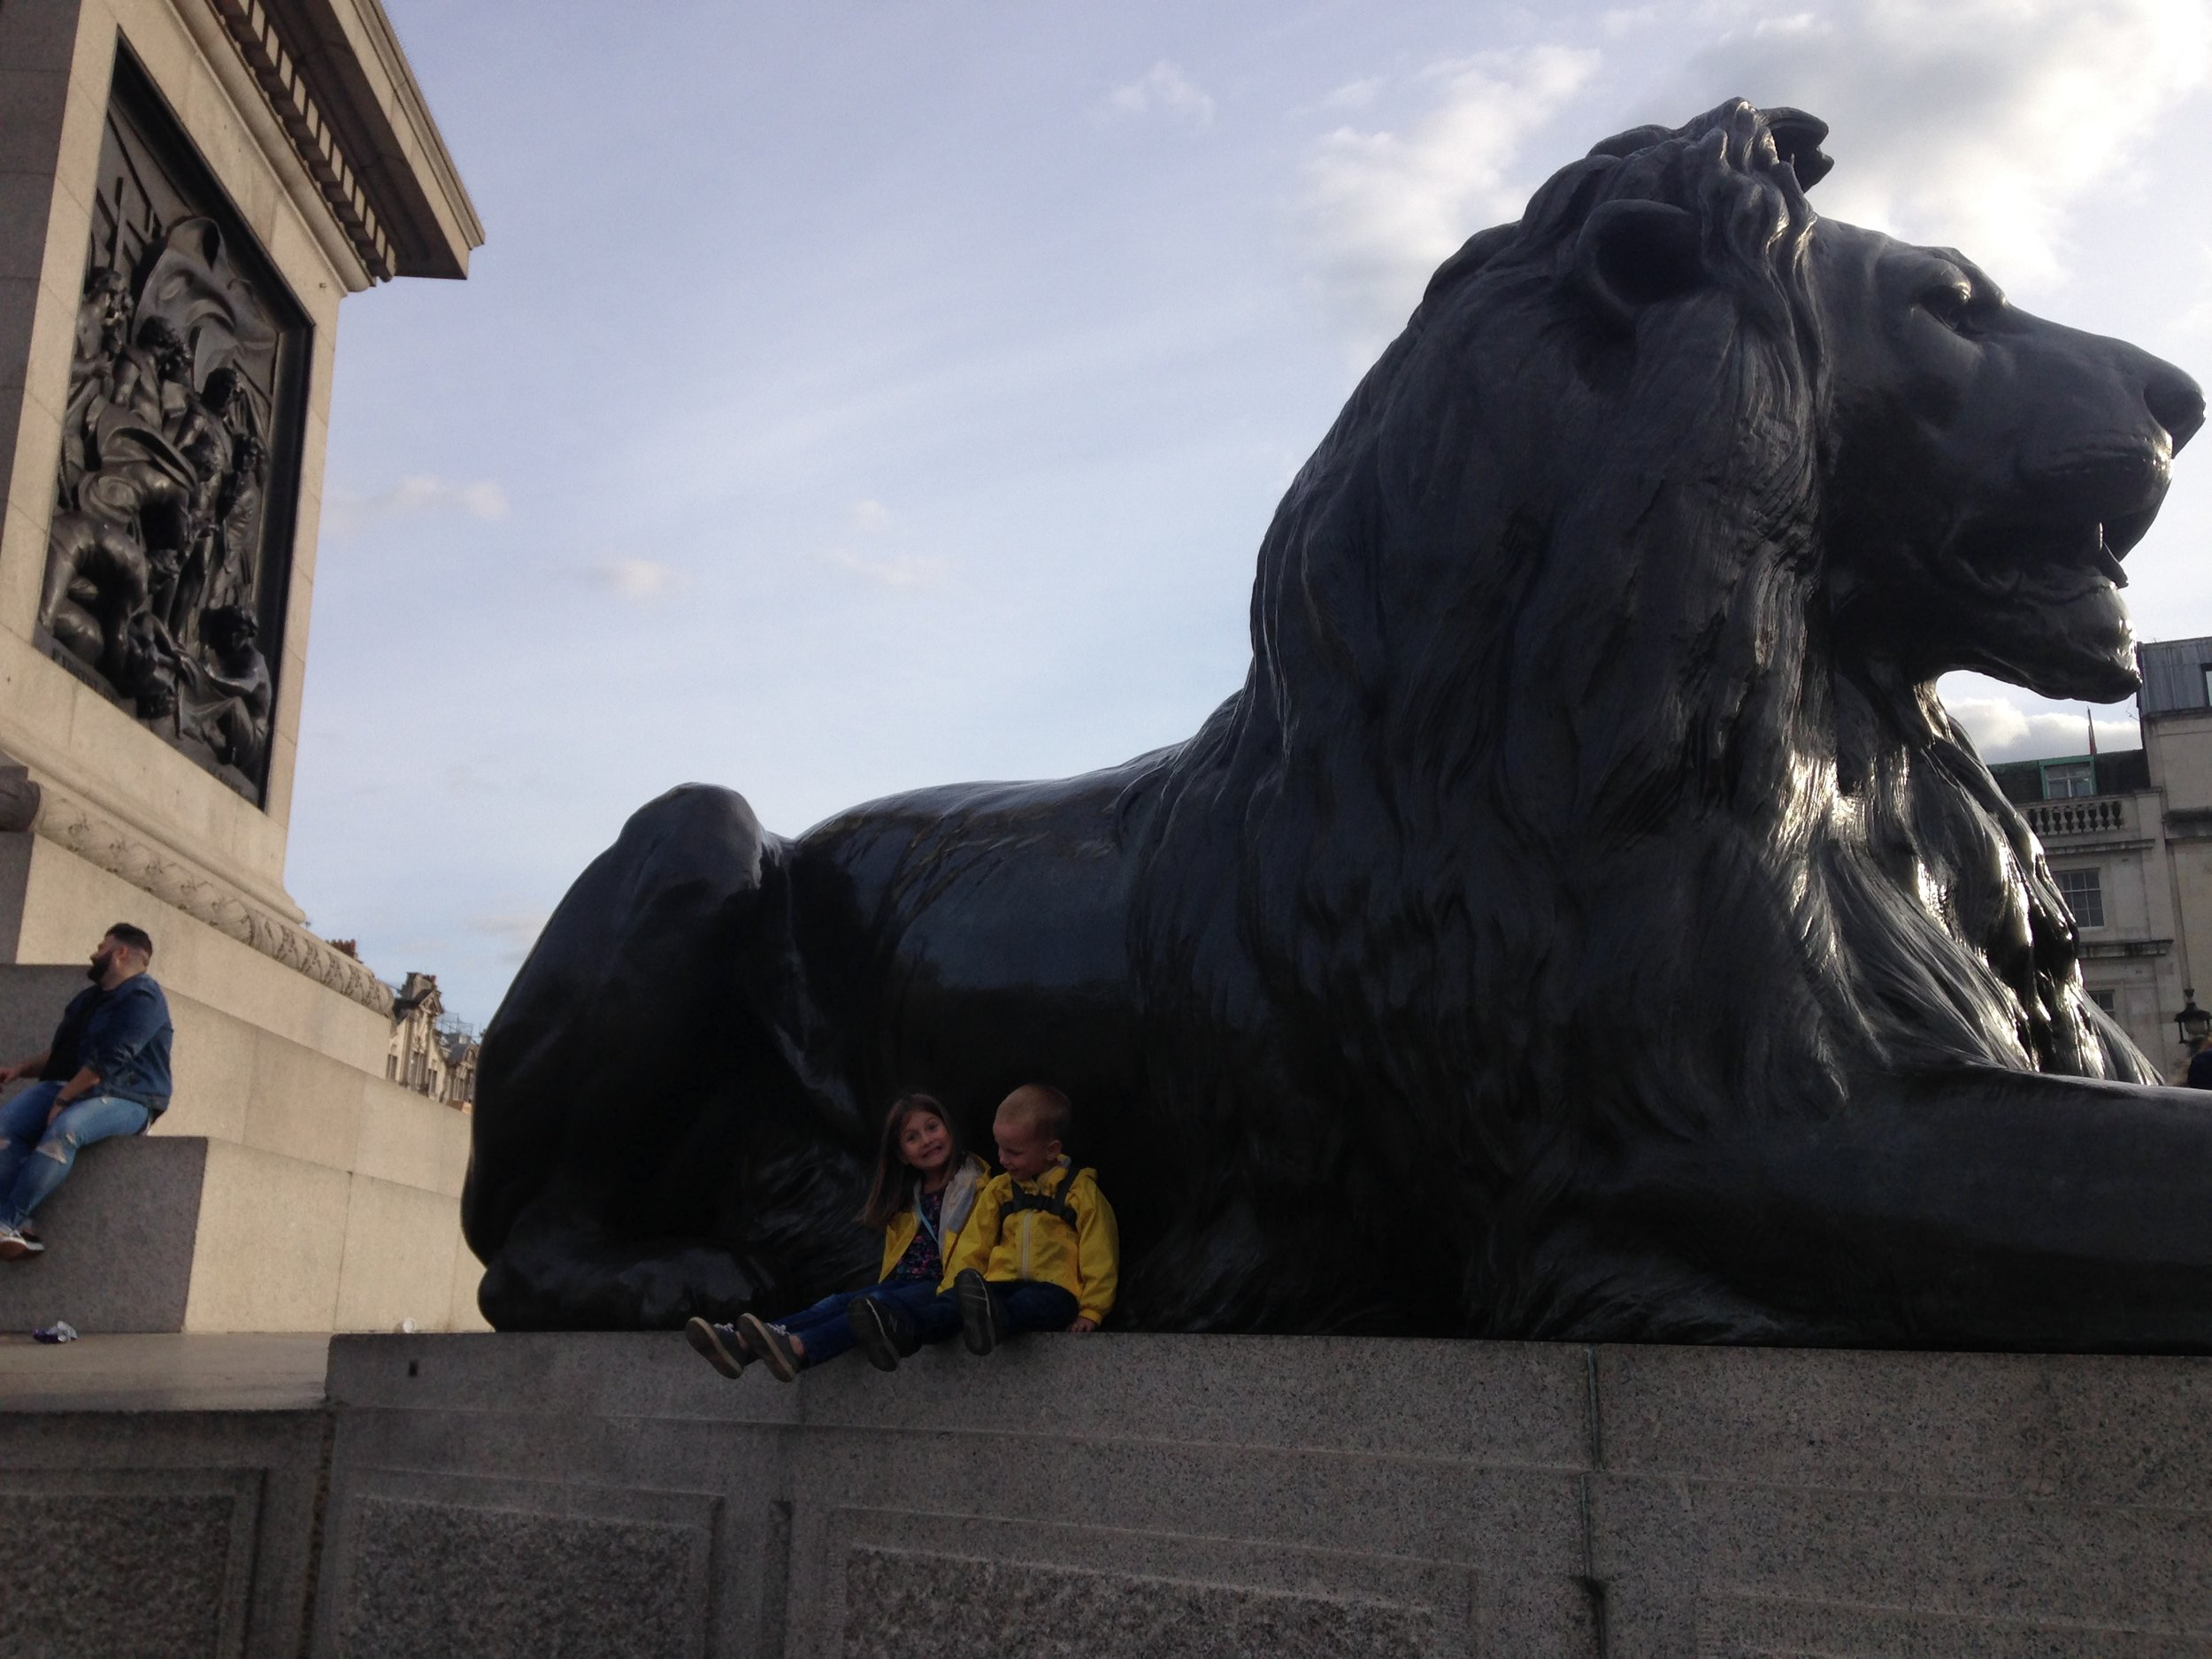 The lions of Trafalgar Square were a huge hit, again thanks to the prominent role they had played in some kid's books we read before our trip. The kids couldn't wait to touch them in person to see if they came alive.